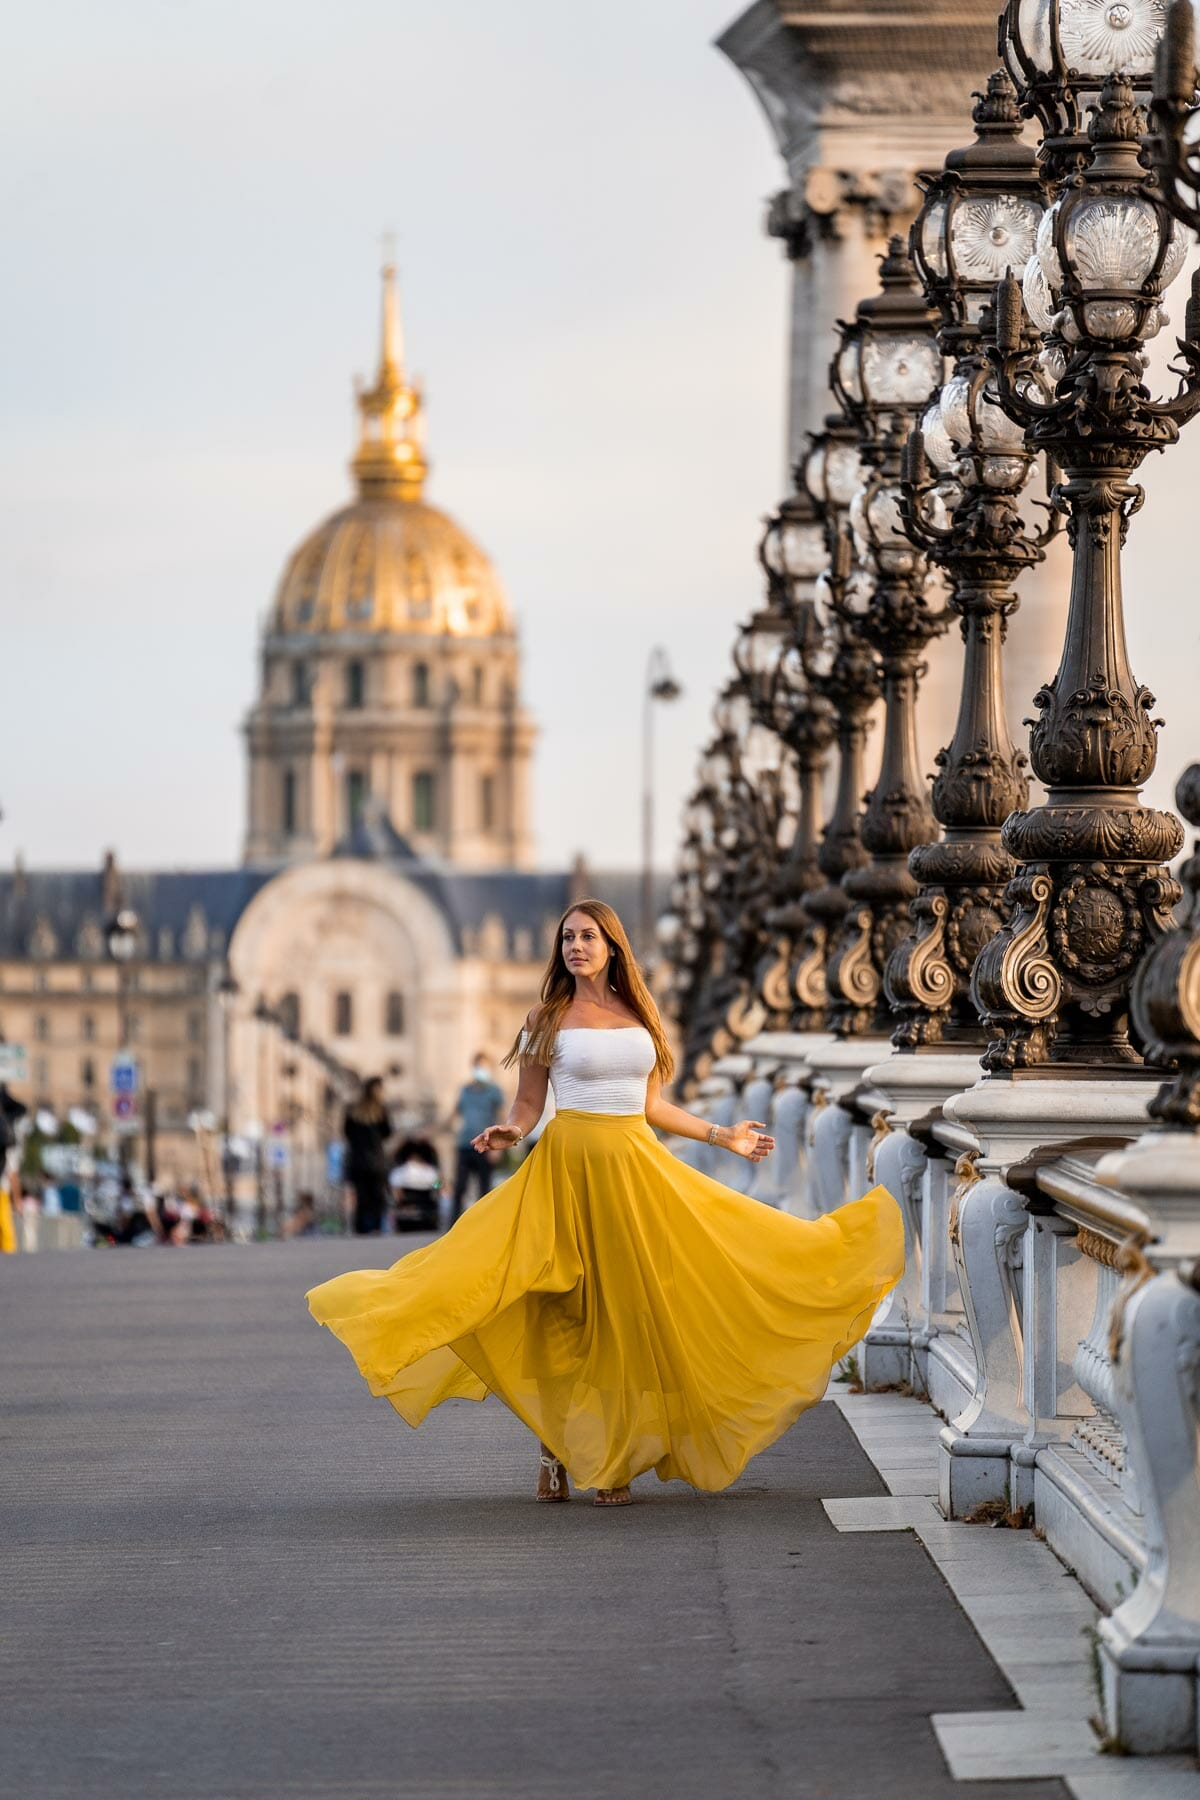 Girl in a pink dress twirling at Pont Alexandre III which is one of the most instagrammable places in Paris